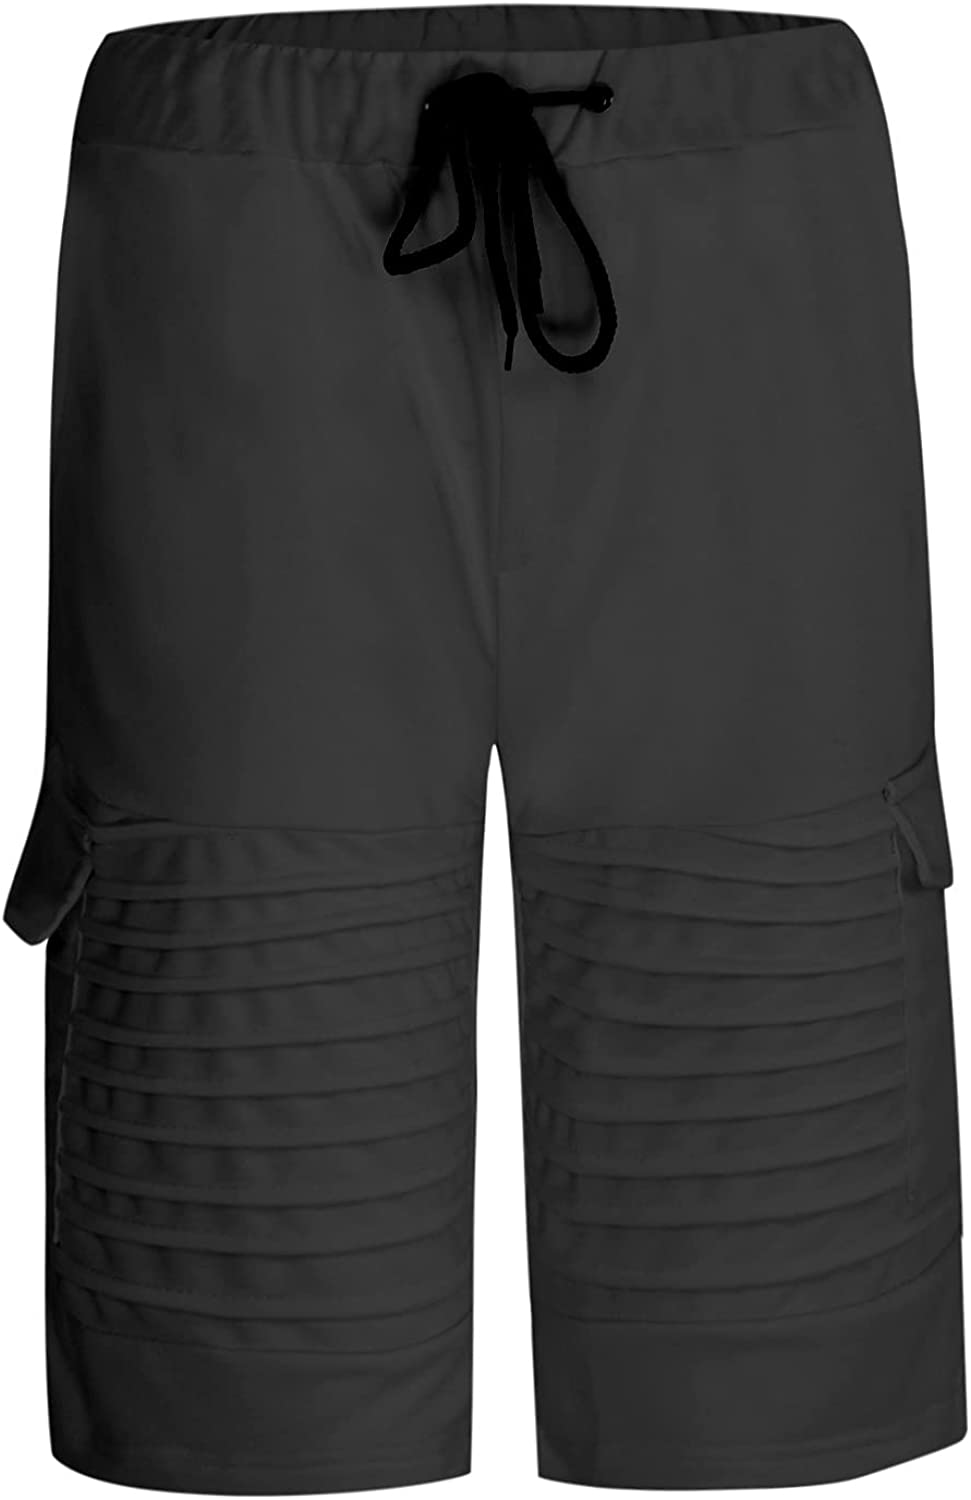 Xiazheuy Mens Shorts Cargo Shorts Casual Pleated Solid Fitness Sports Drawstring Pockets Five-Point Jogger Shorts